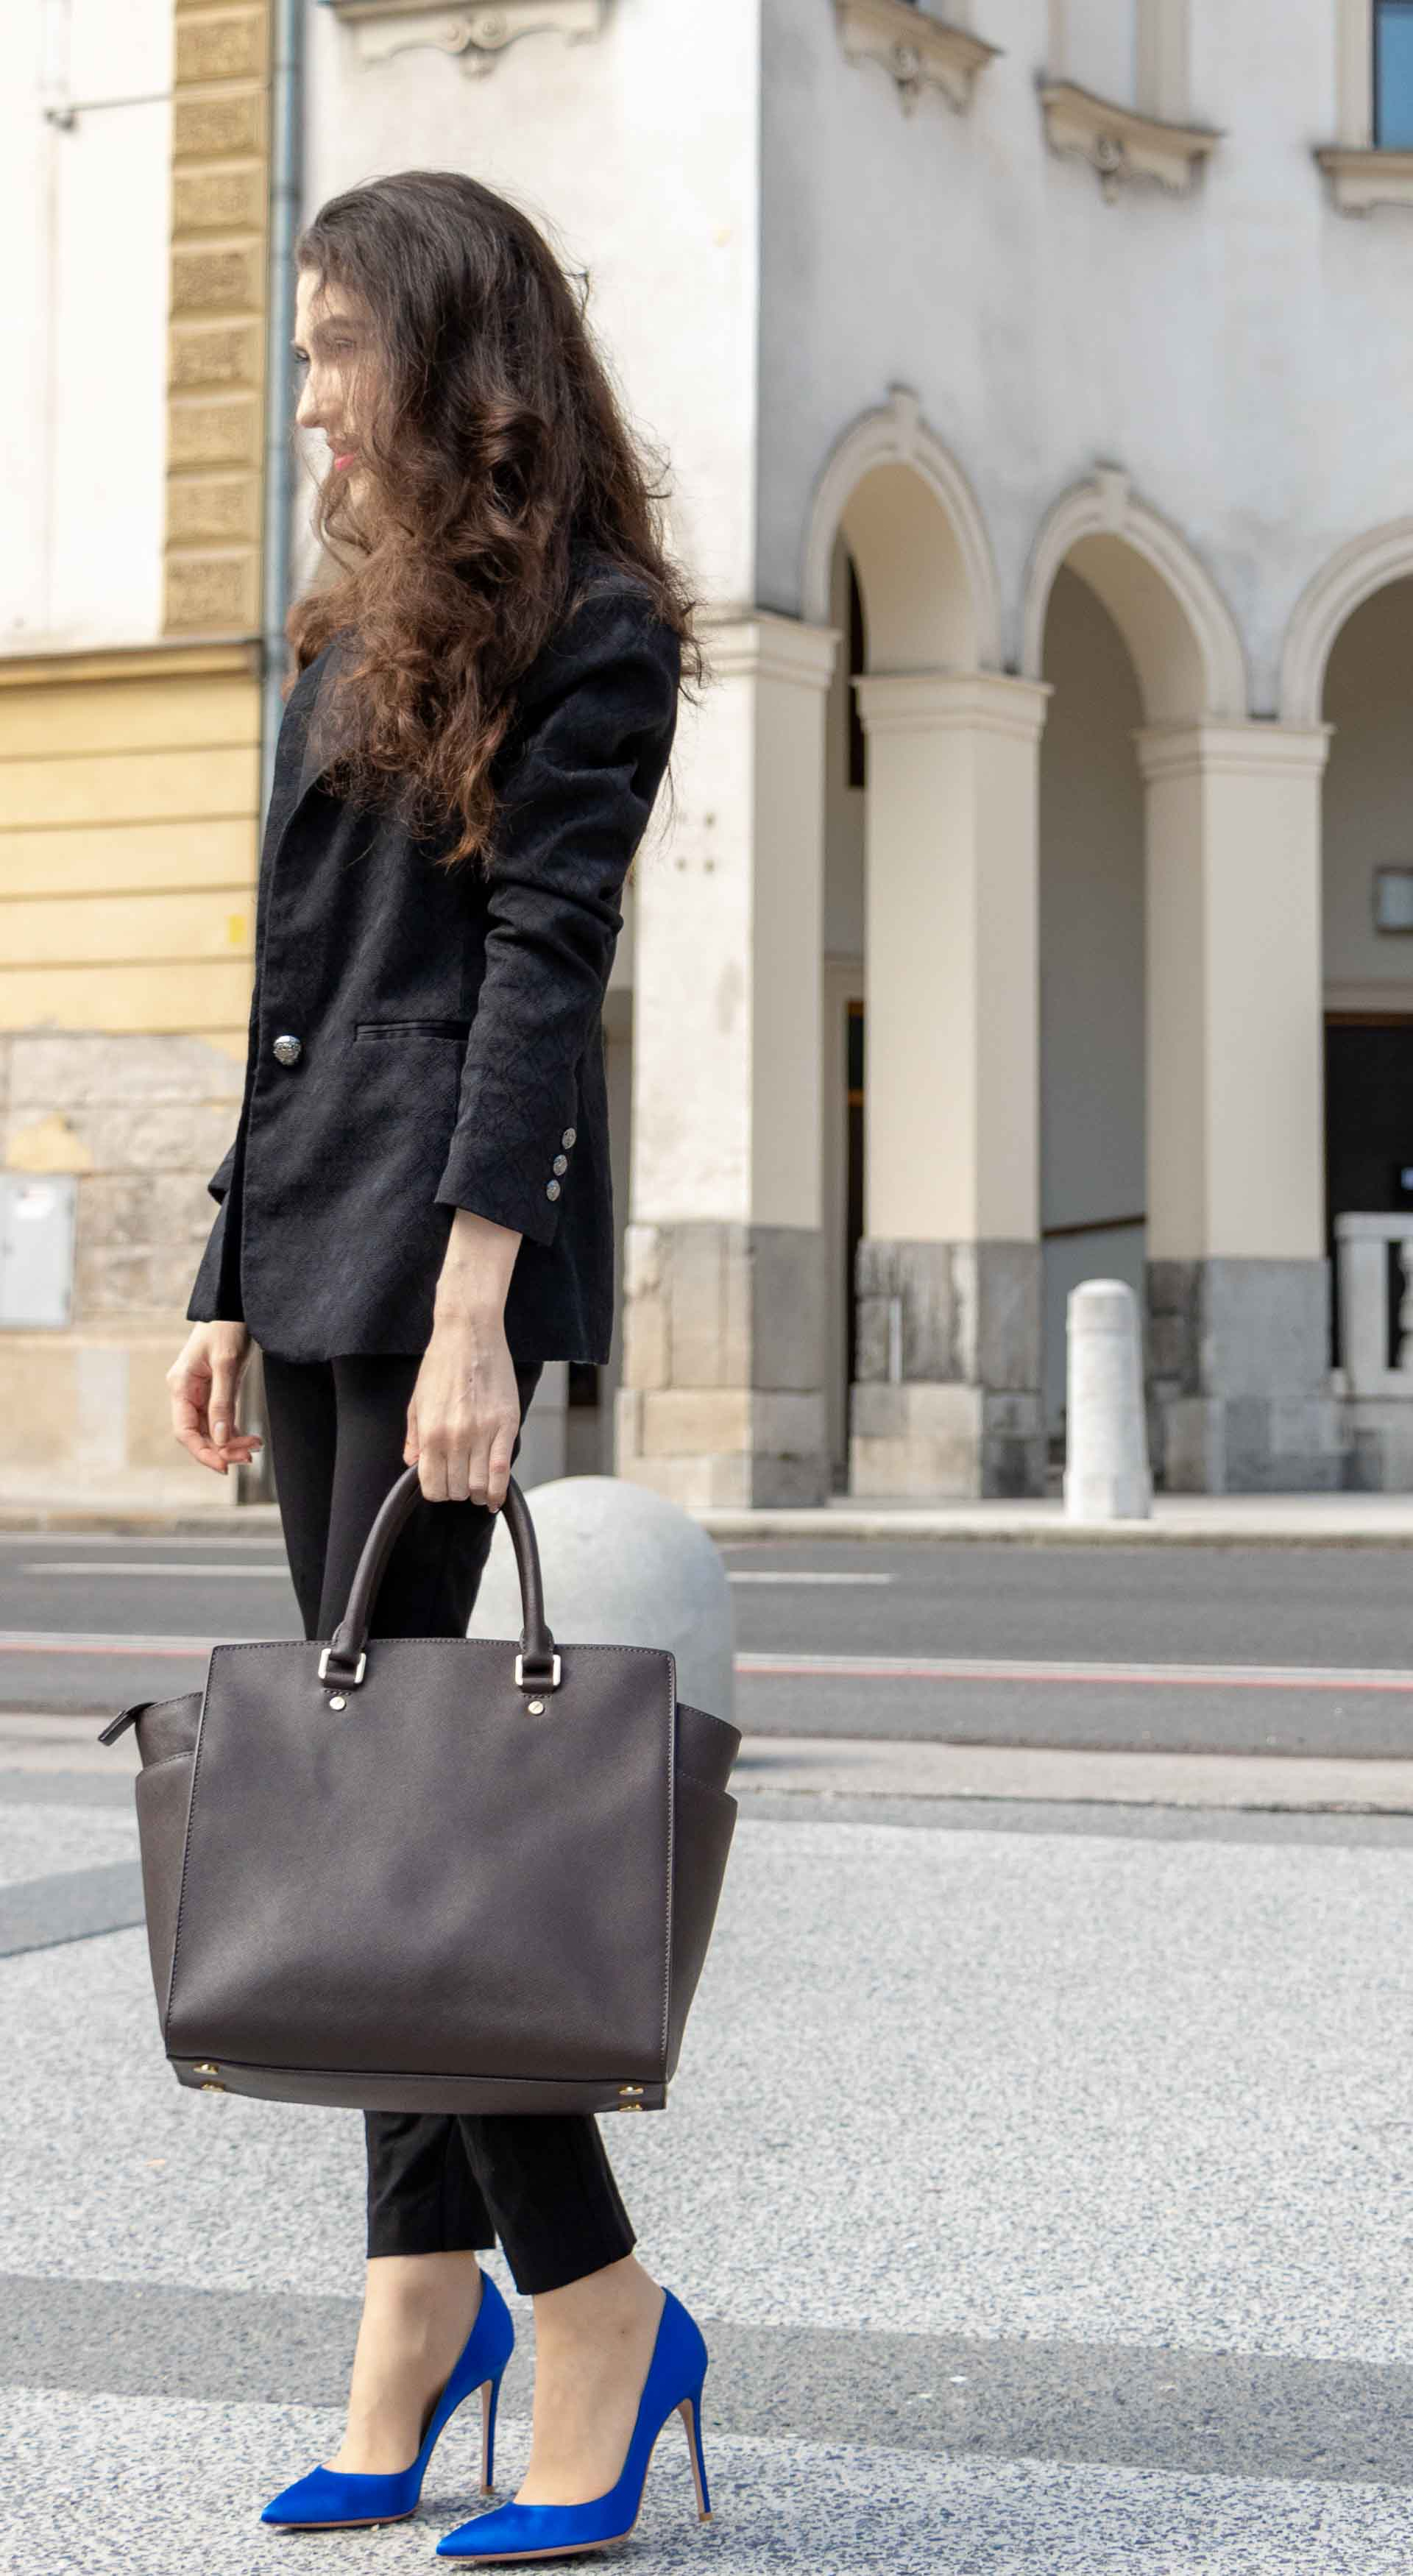 Beautiful Slovenian Fashion Blogger Veronika Lipar of Brunette from Wall dressed in black pantsuit, brown Michael Kors selma top handle tote bag, Gianvito Rossi blue satin pumps for work in fall